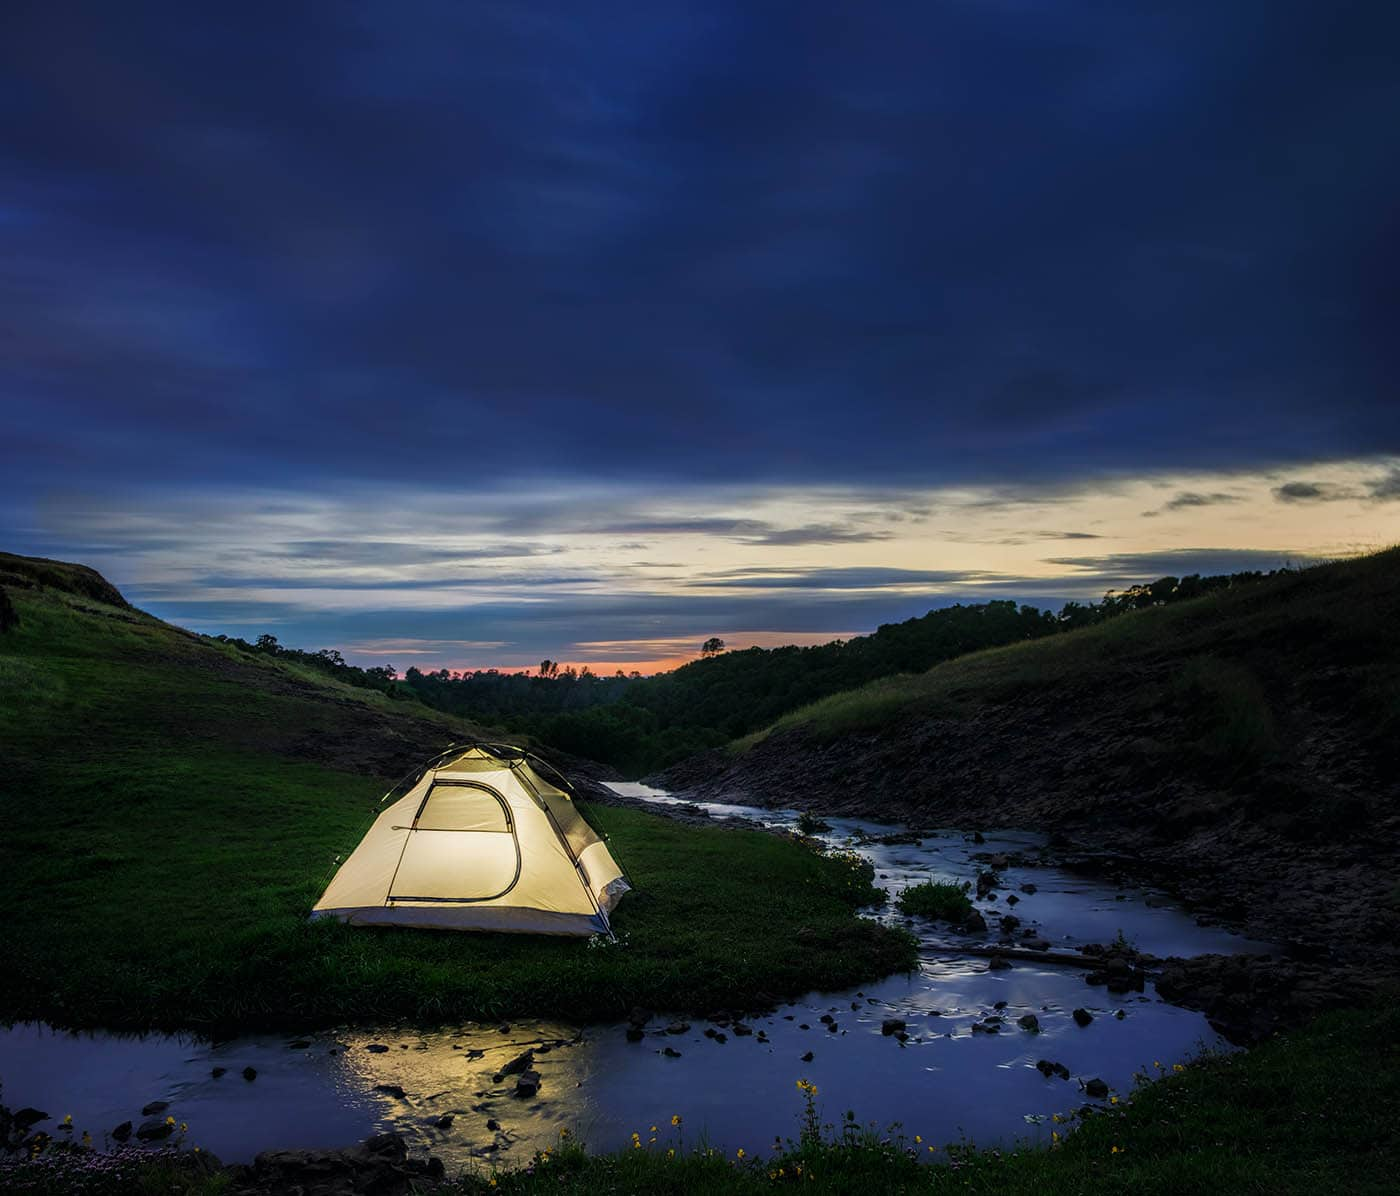 Camping by a Mountain Stream.